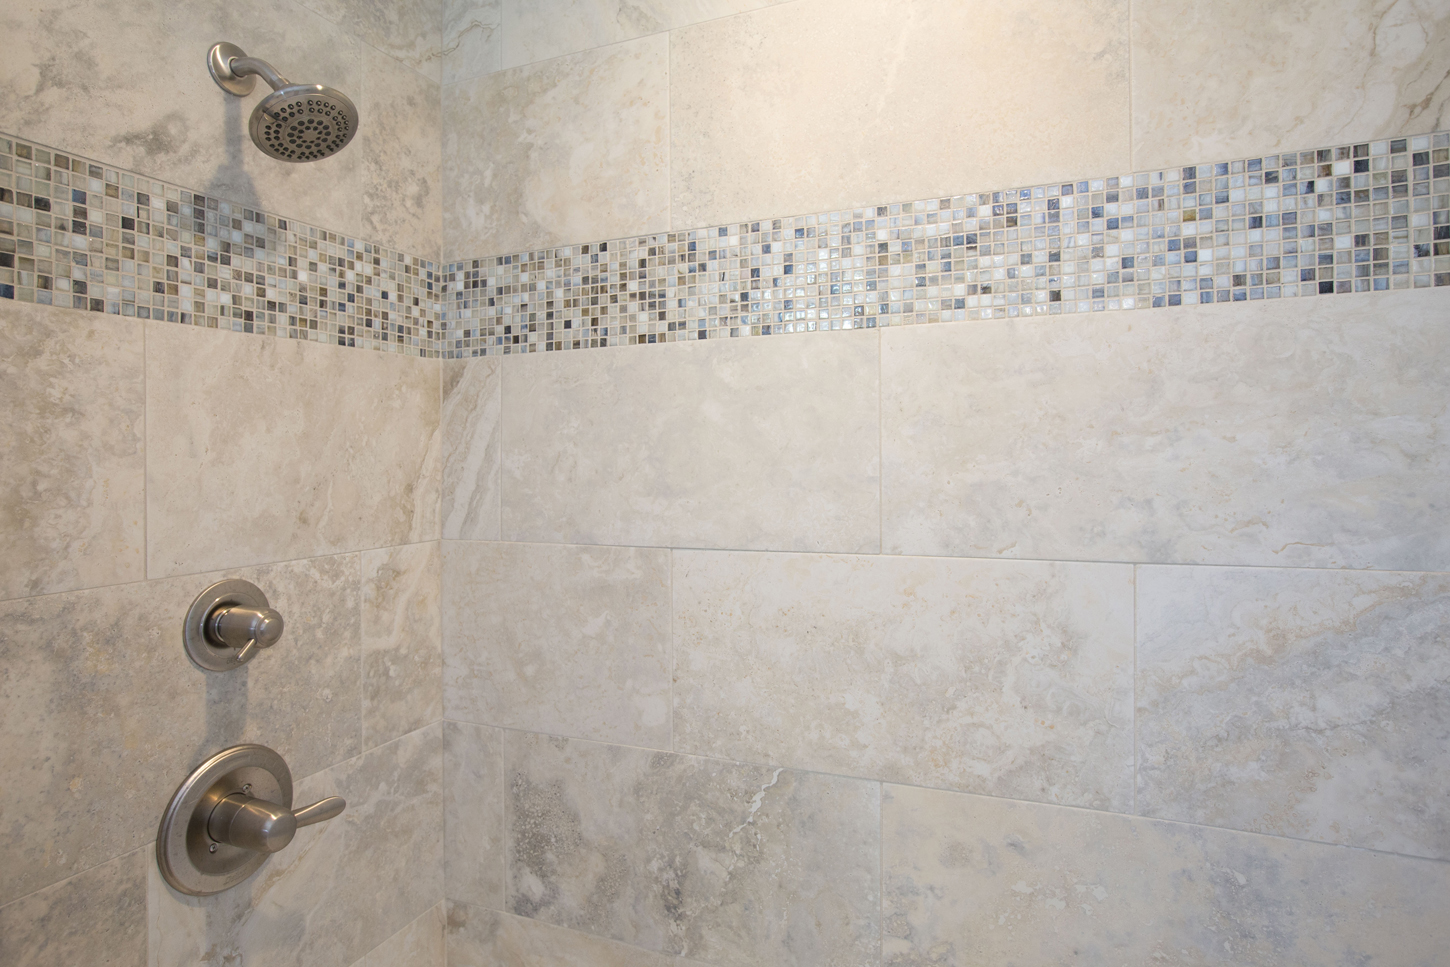 Regal Concepts and Designs Master Bath Remodel Karok Ave in Clairmont, CA